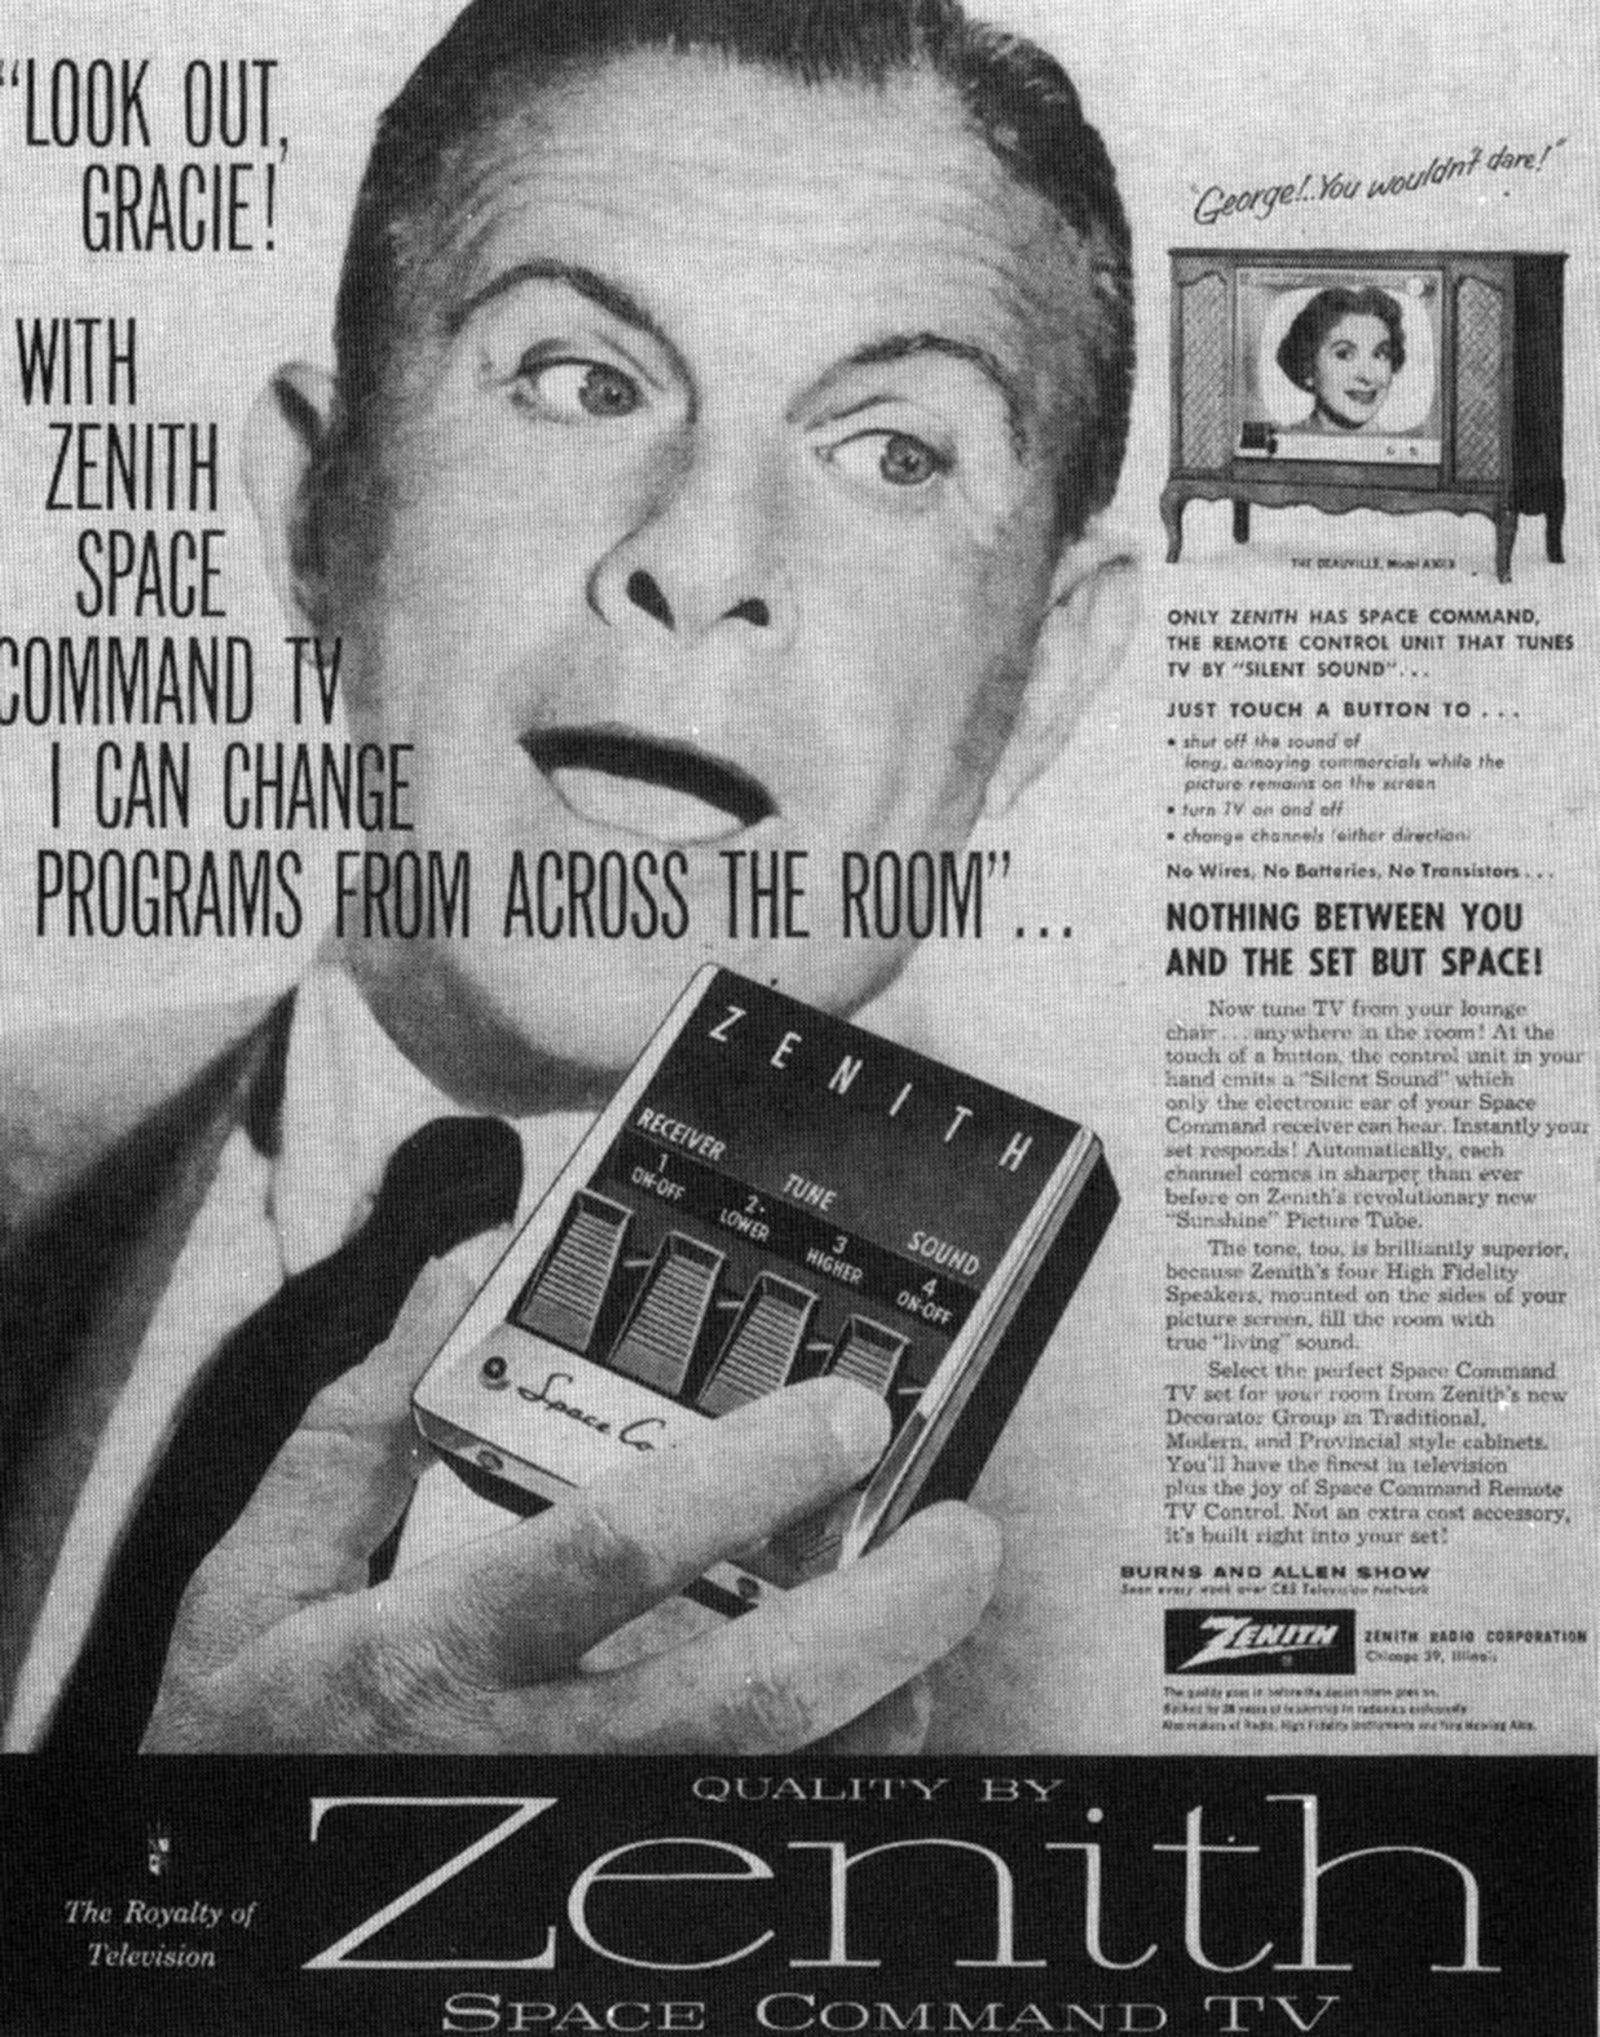 First TV remotes made sedentary lifestyle a click away